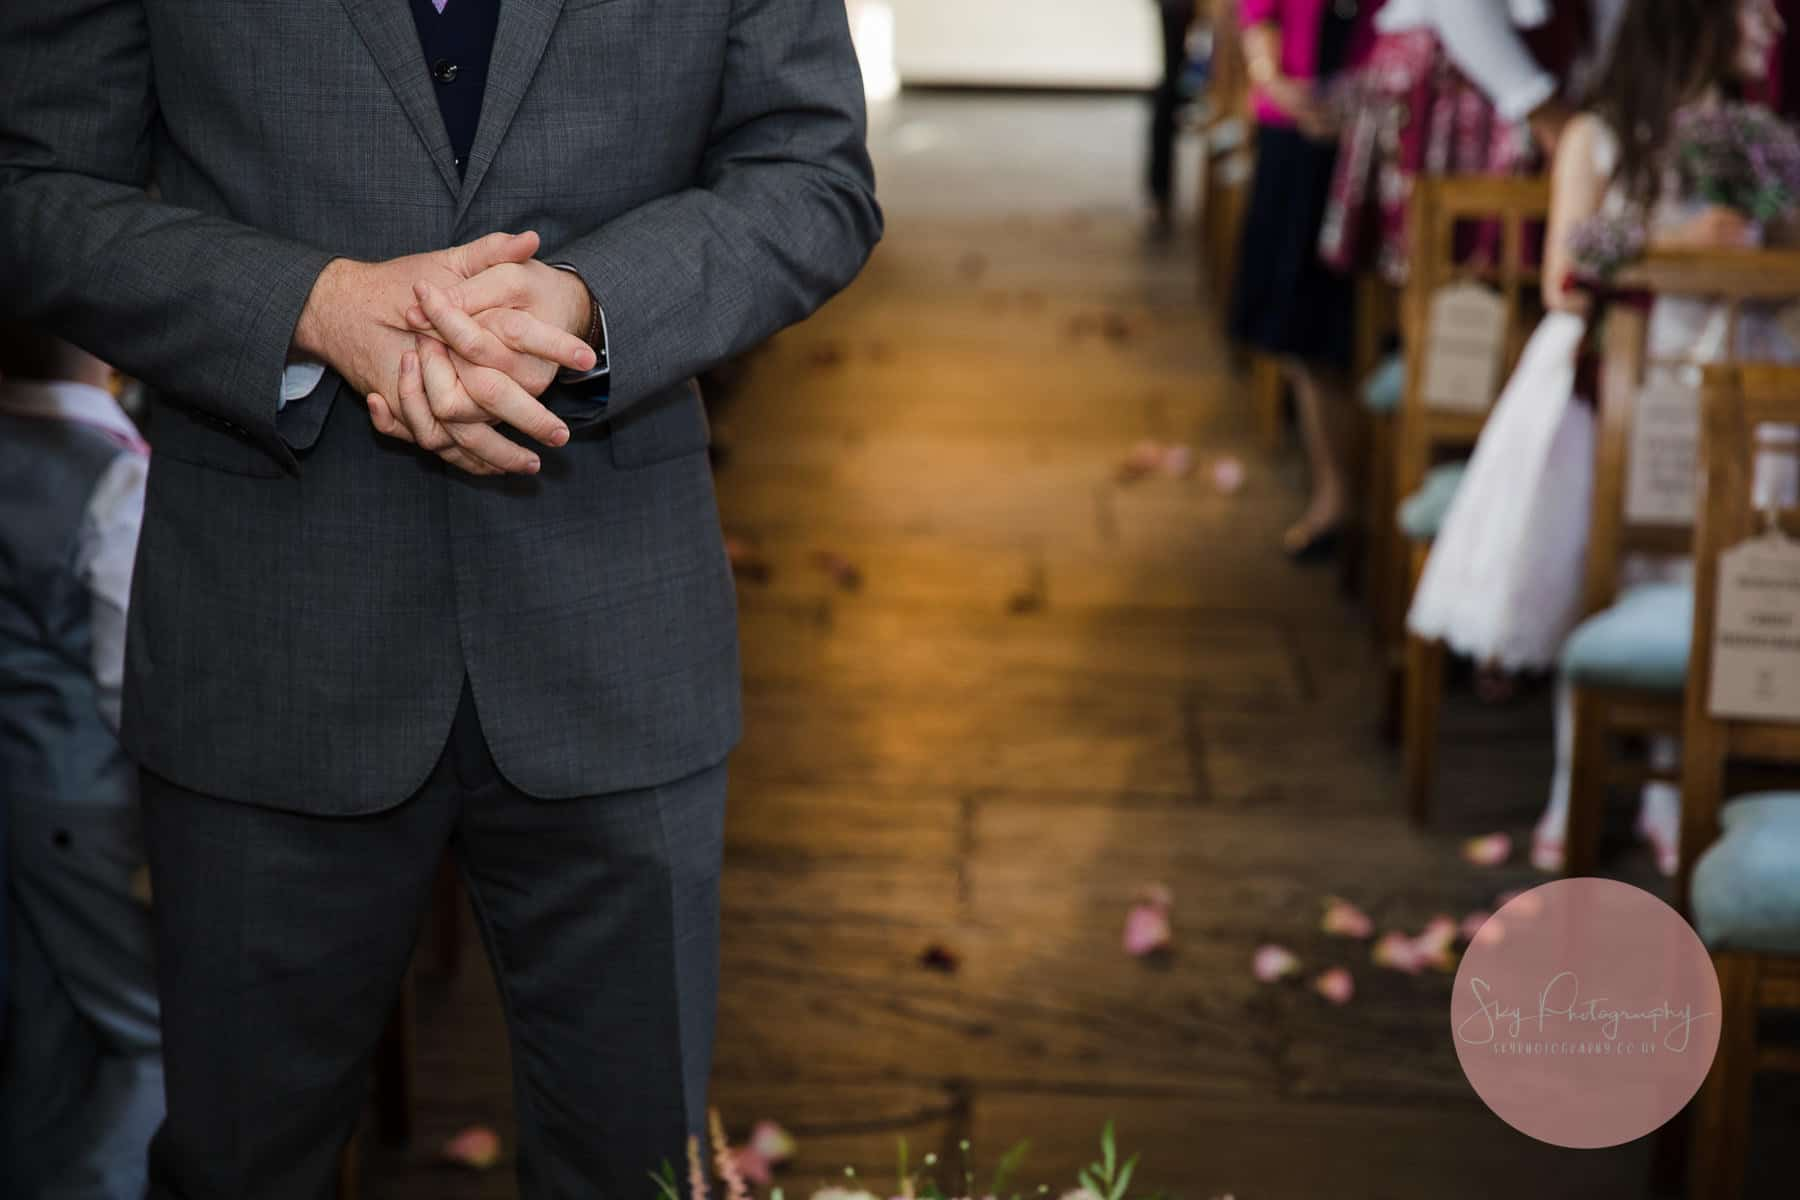 Groom nervously waits for the arrival of the bride, his hands nervously being rung